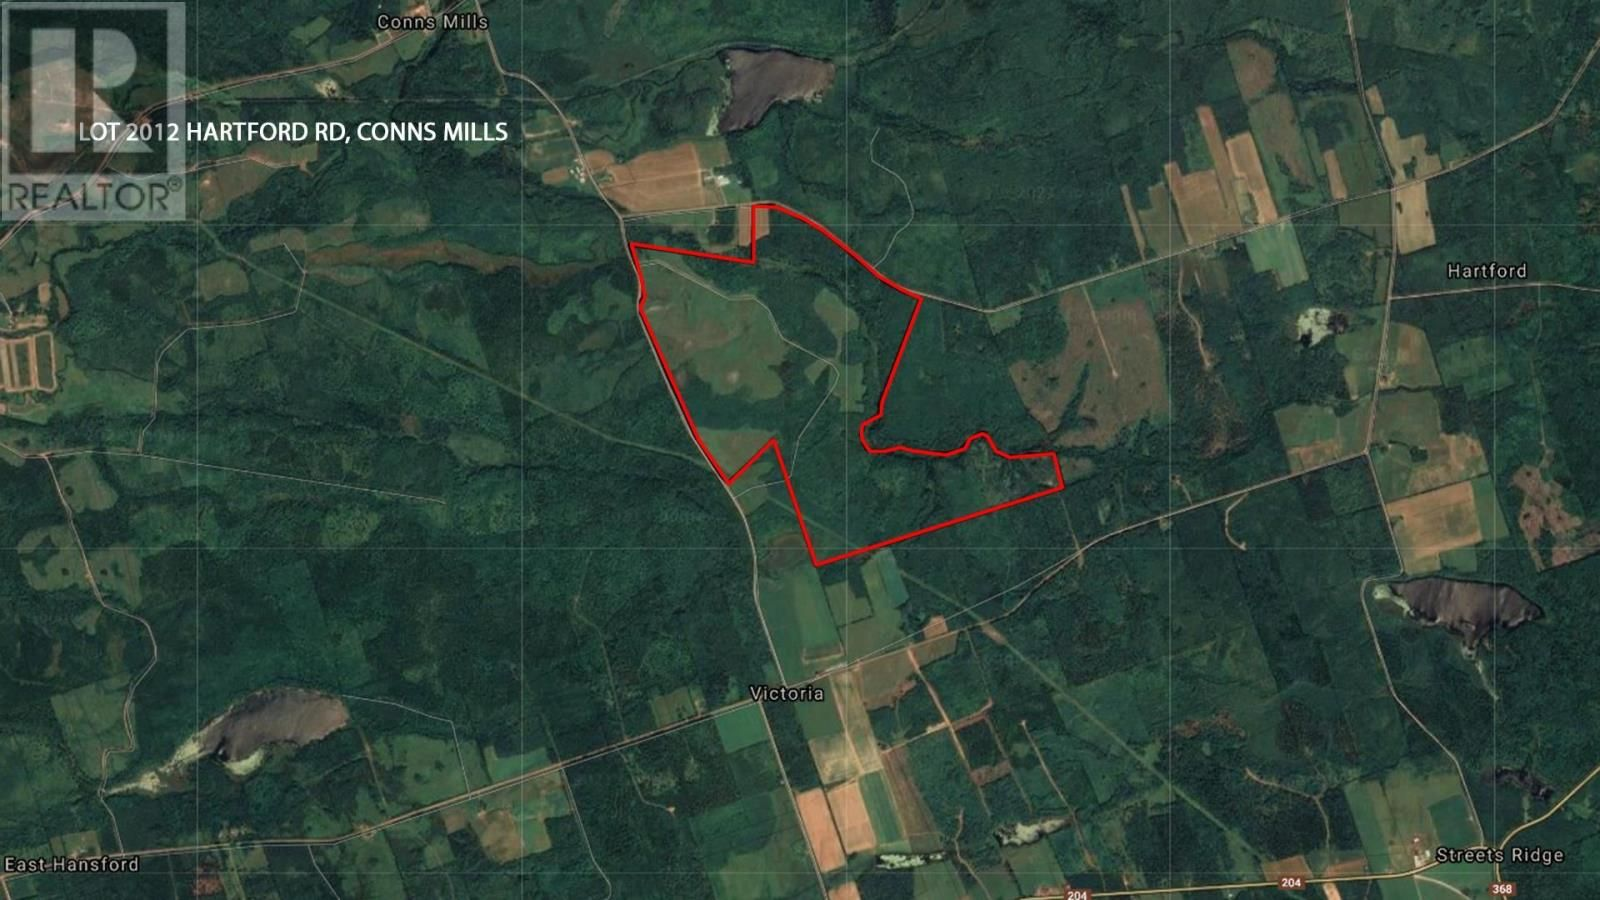 Main Photo: Lot 2012-1 Hartford Rd in Conns Mills: Agriculture for sale : MLS®# 202110150